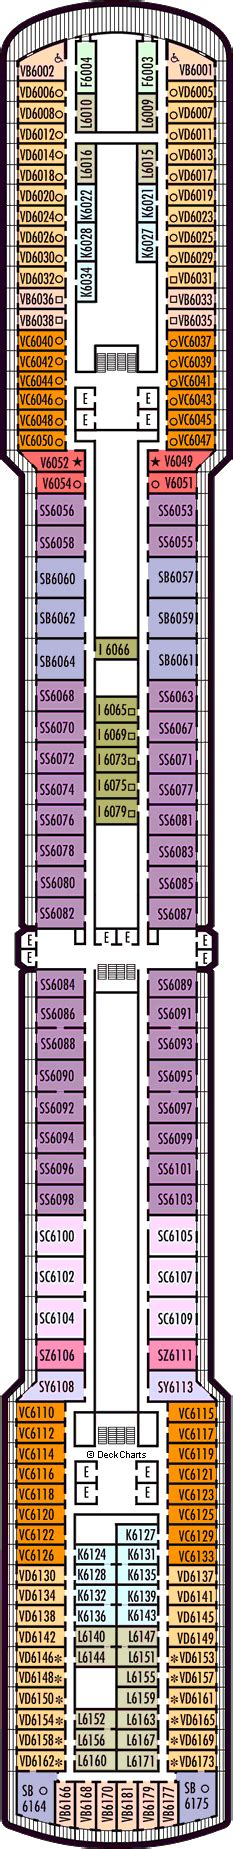 Deck Plans For The Holland America Amsterdam Ship